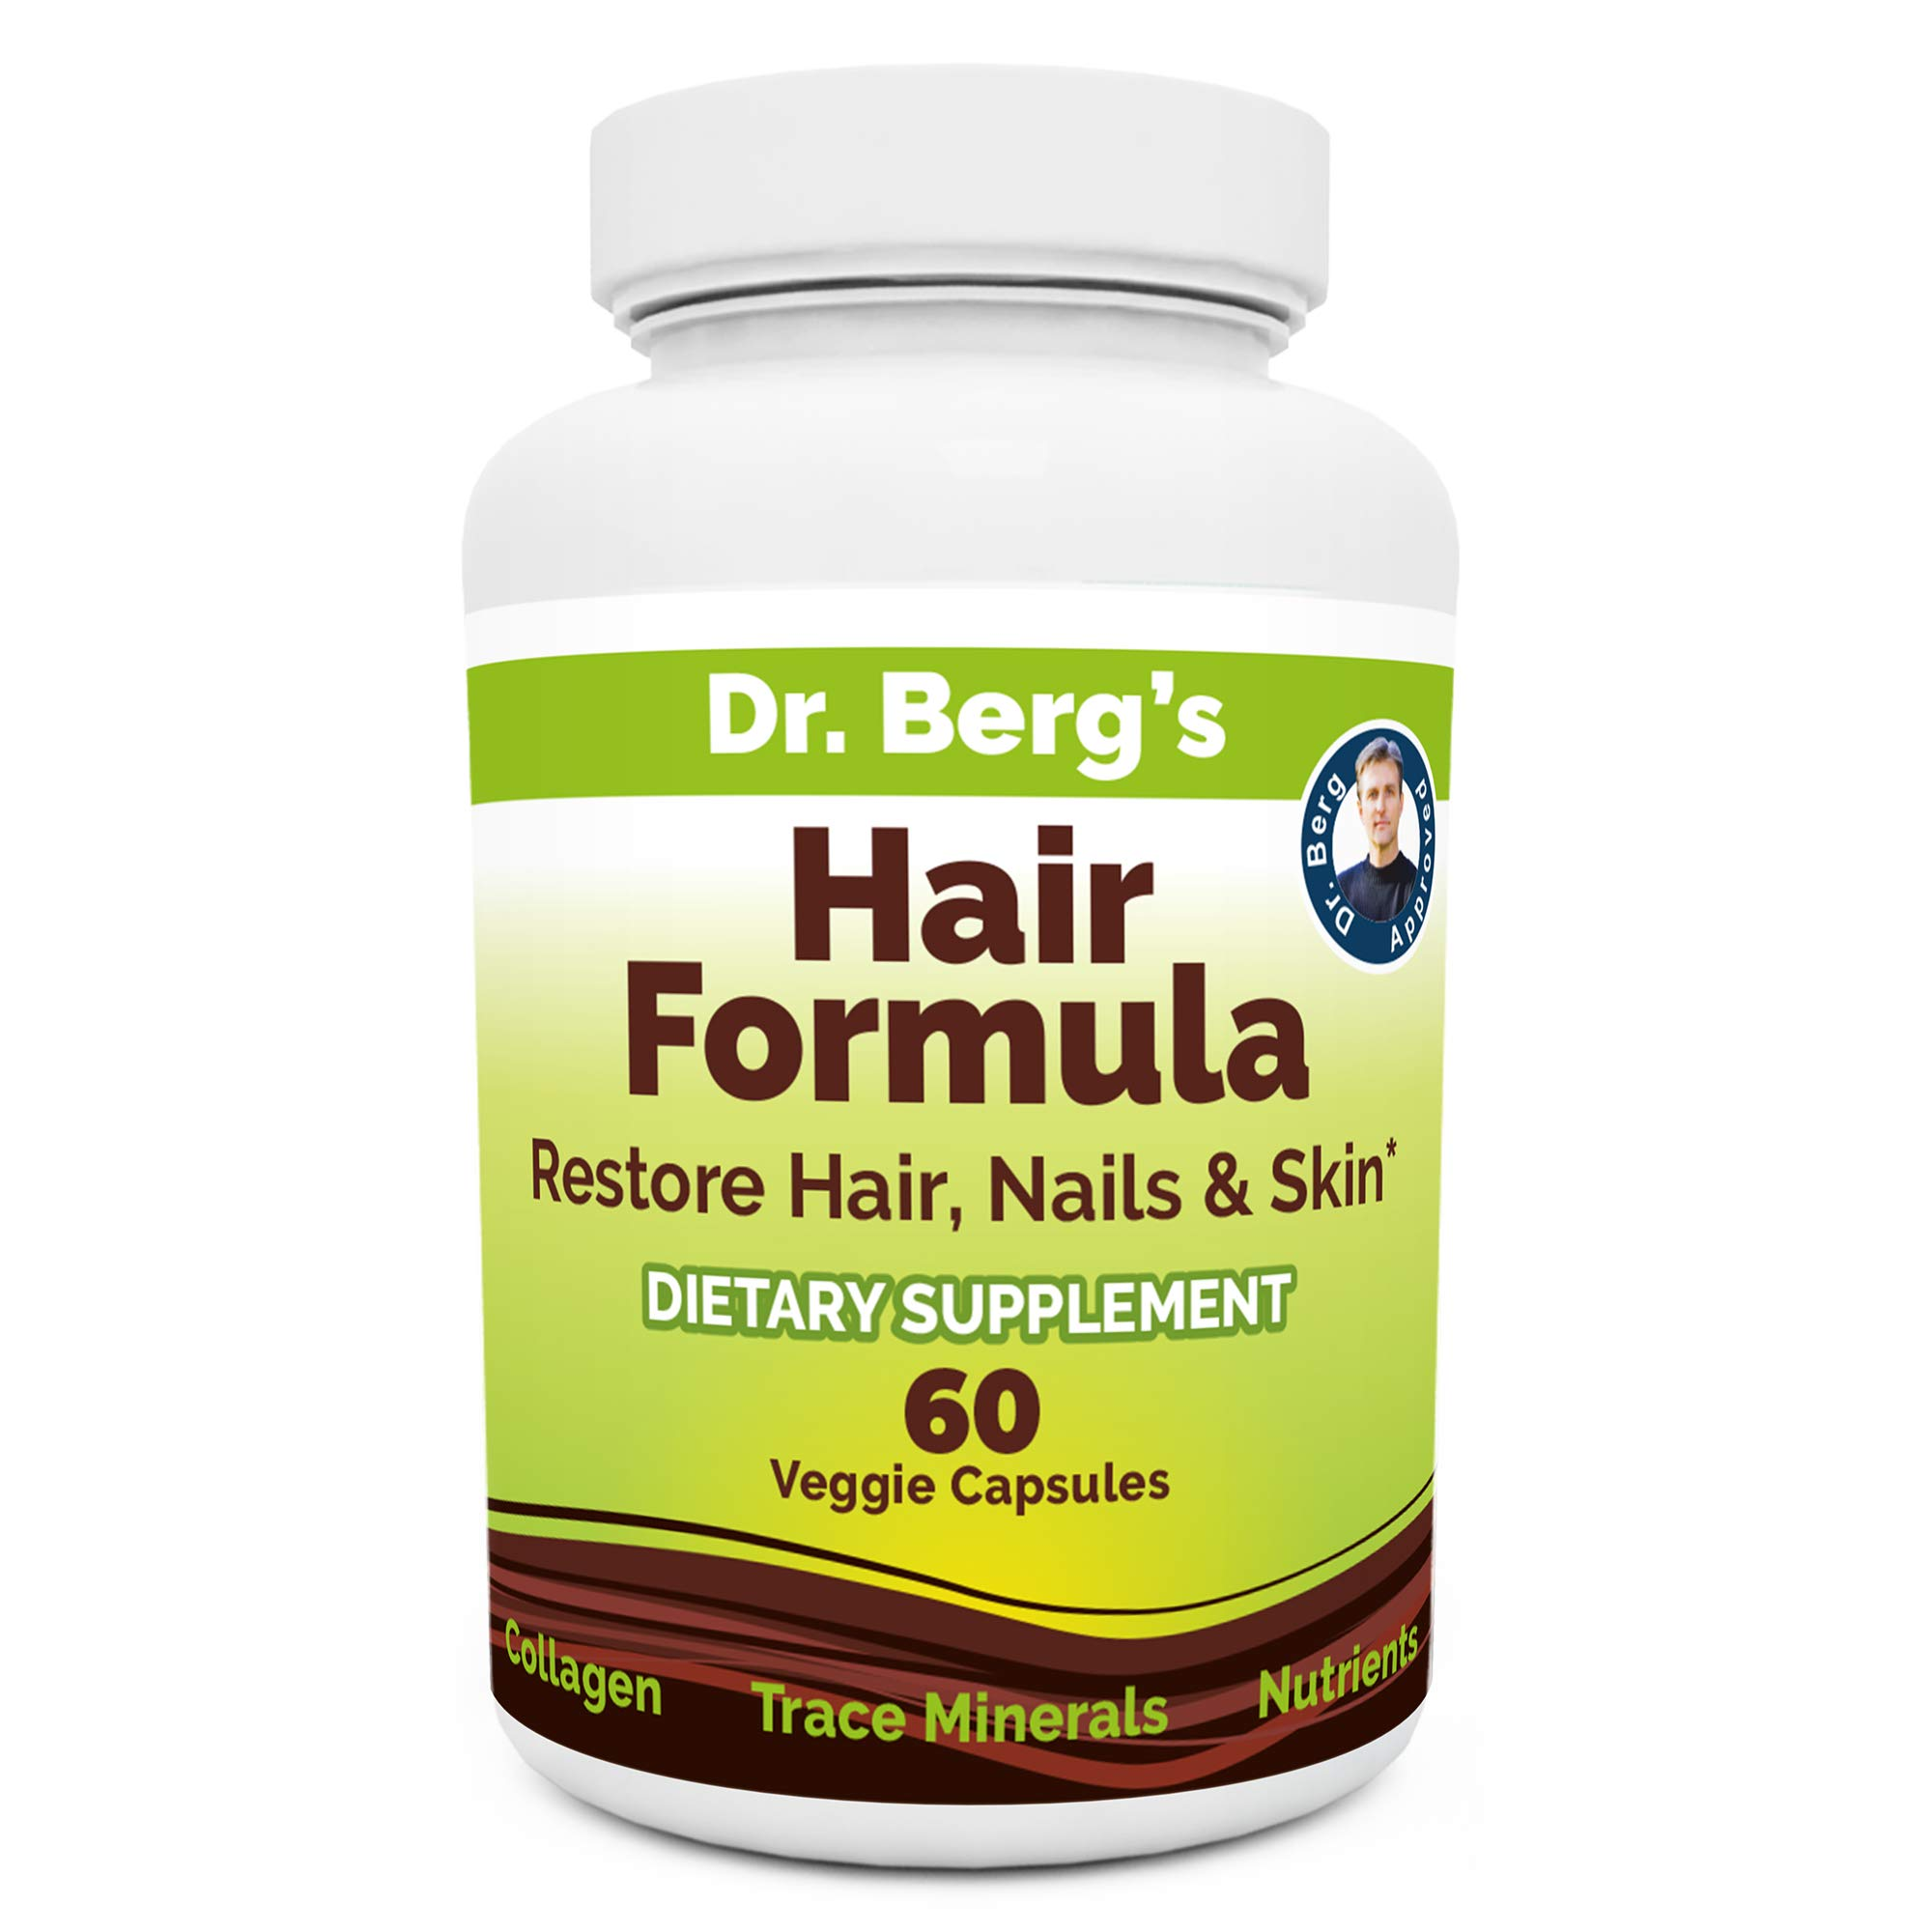 Dr. Berg's Hair Formula Supplement Due to Normal Aging Supports Healthy Nails & Skin - DHT Blocker with Biotin, Collagen Type I&II, Trace Minerals, Whole Food Vitamin C and Bs for Women and Men